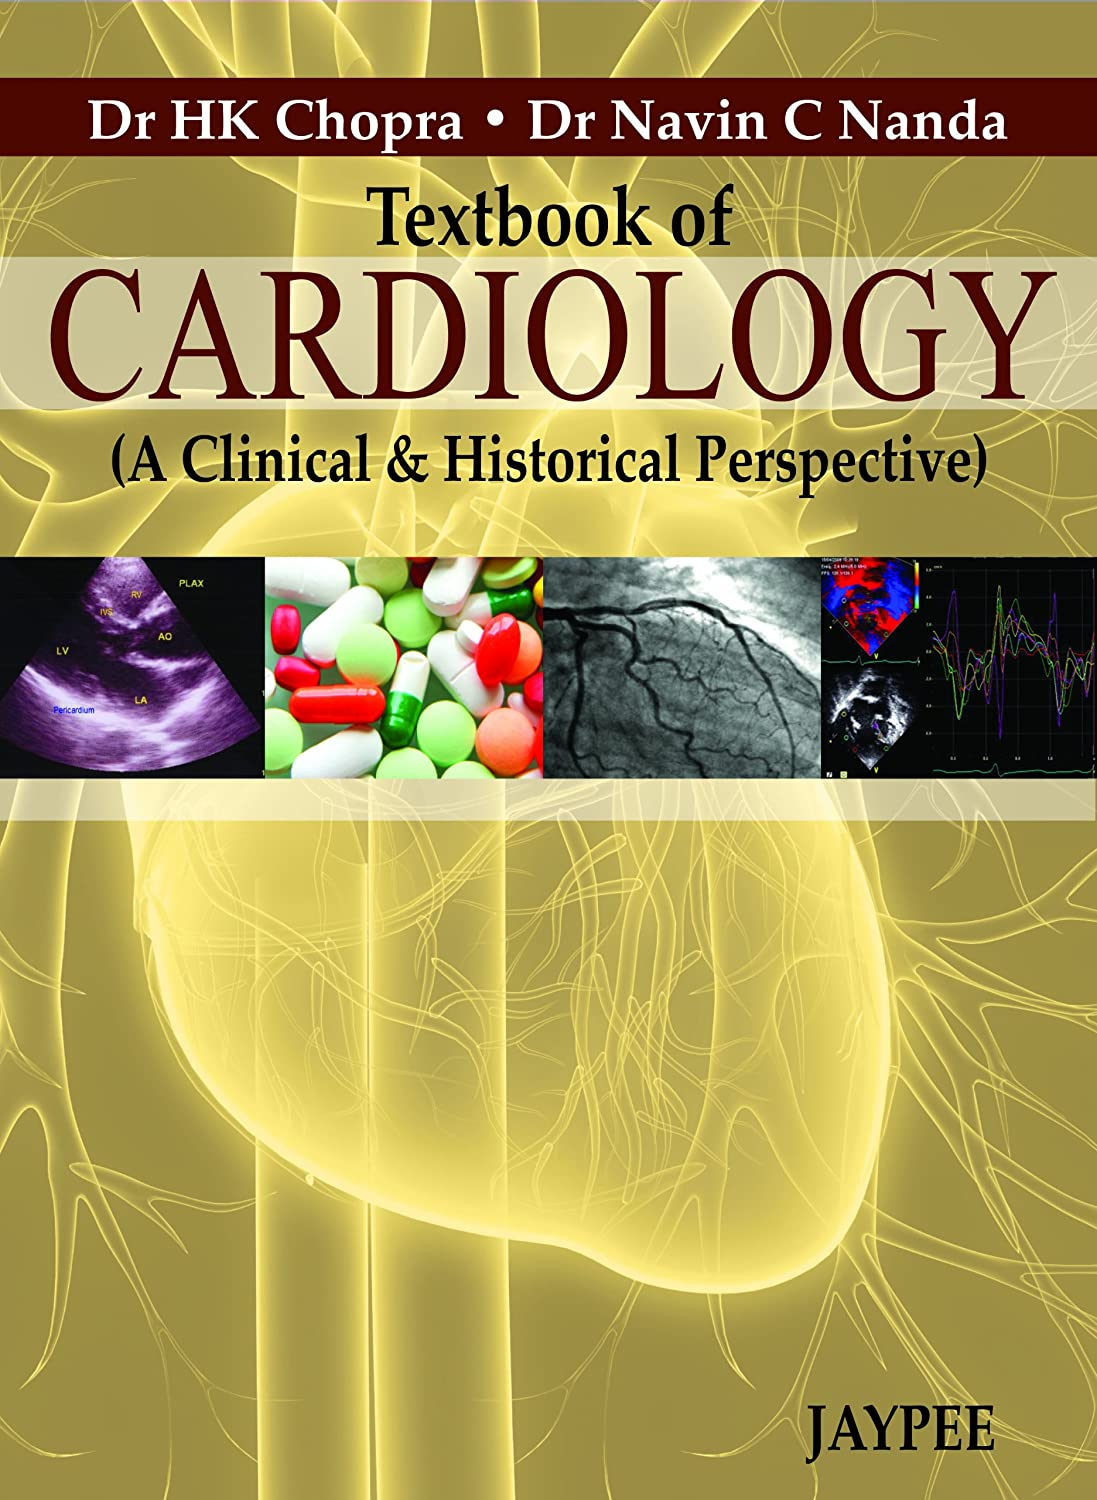 Textbook of Cardiology: A Clinical and Historical Perspective 91iKhKOxNYL._SL1500_